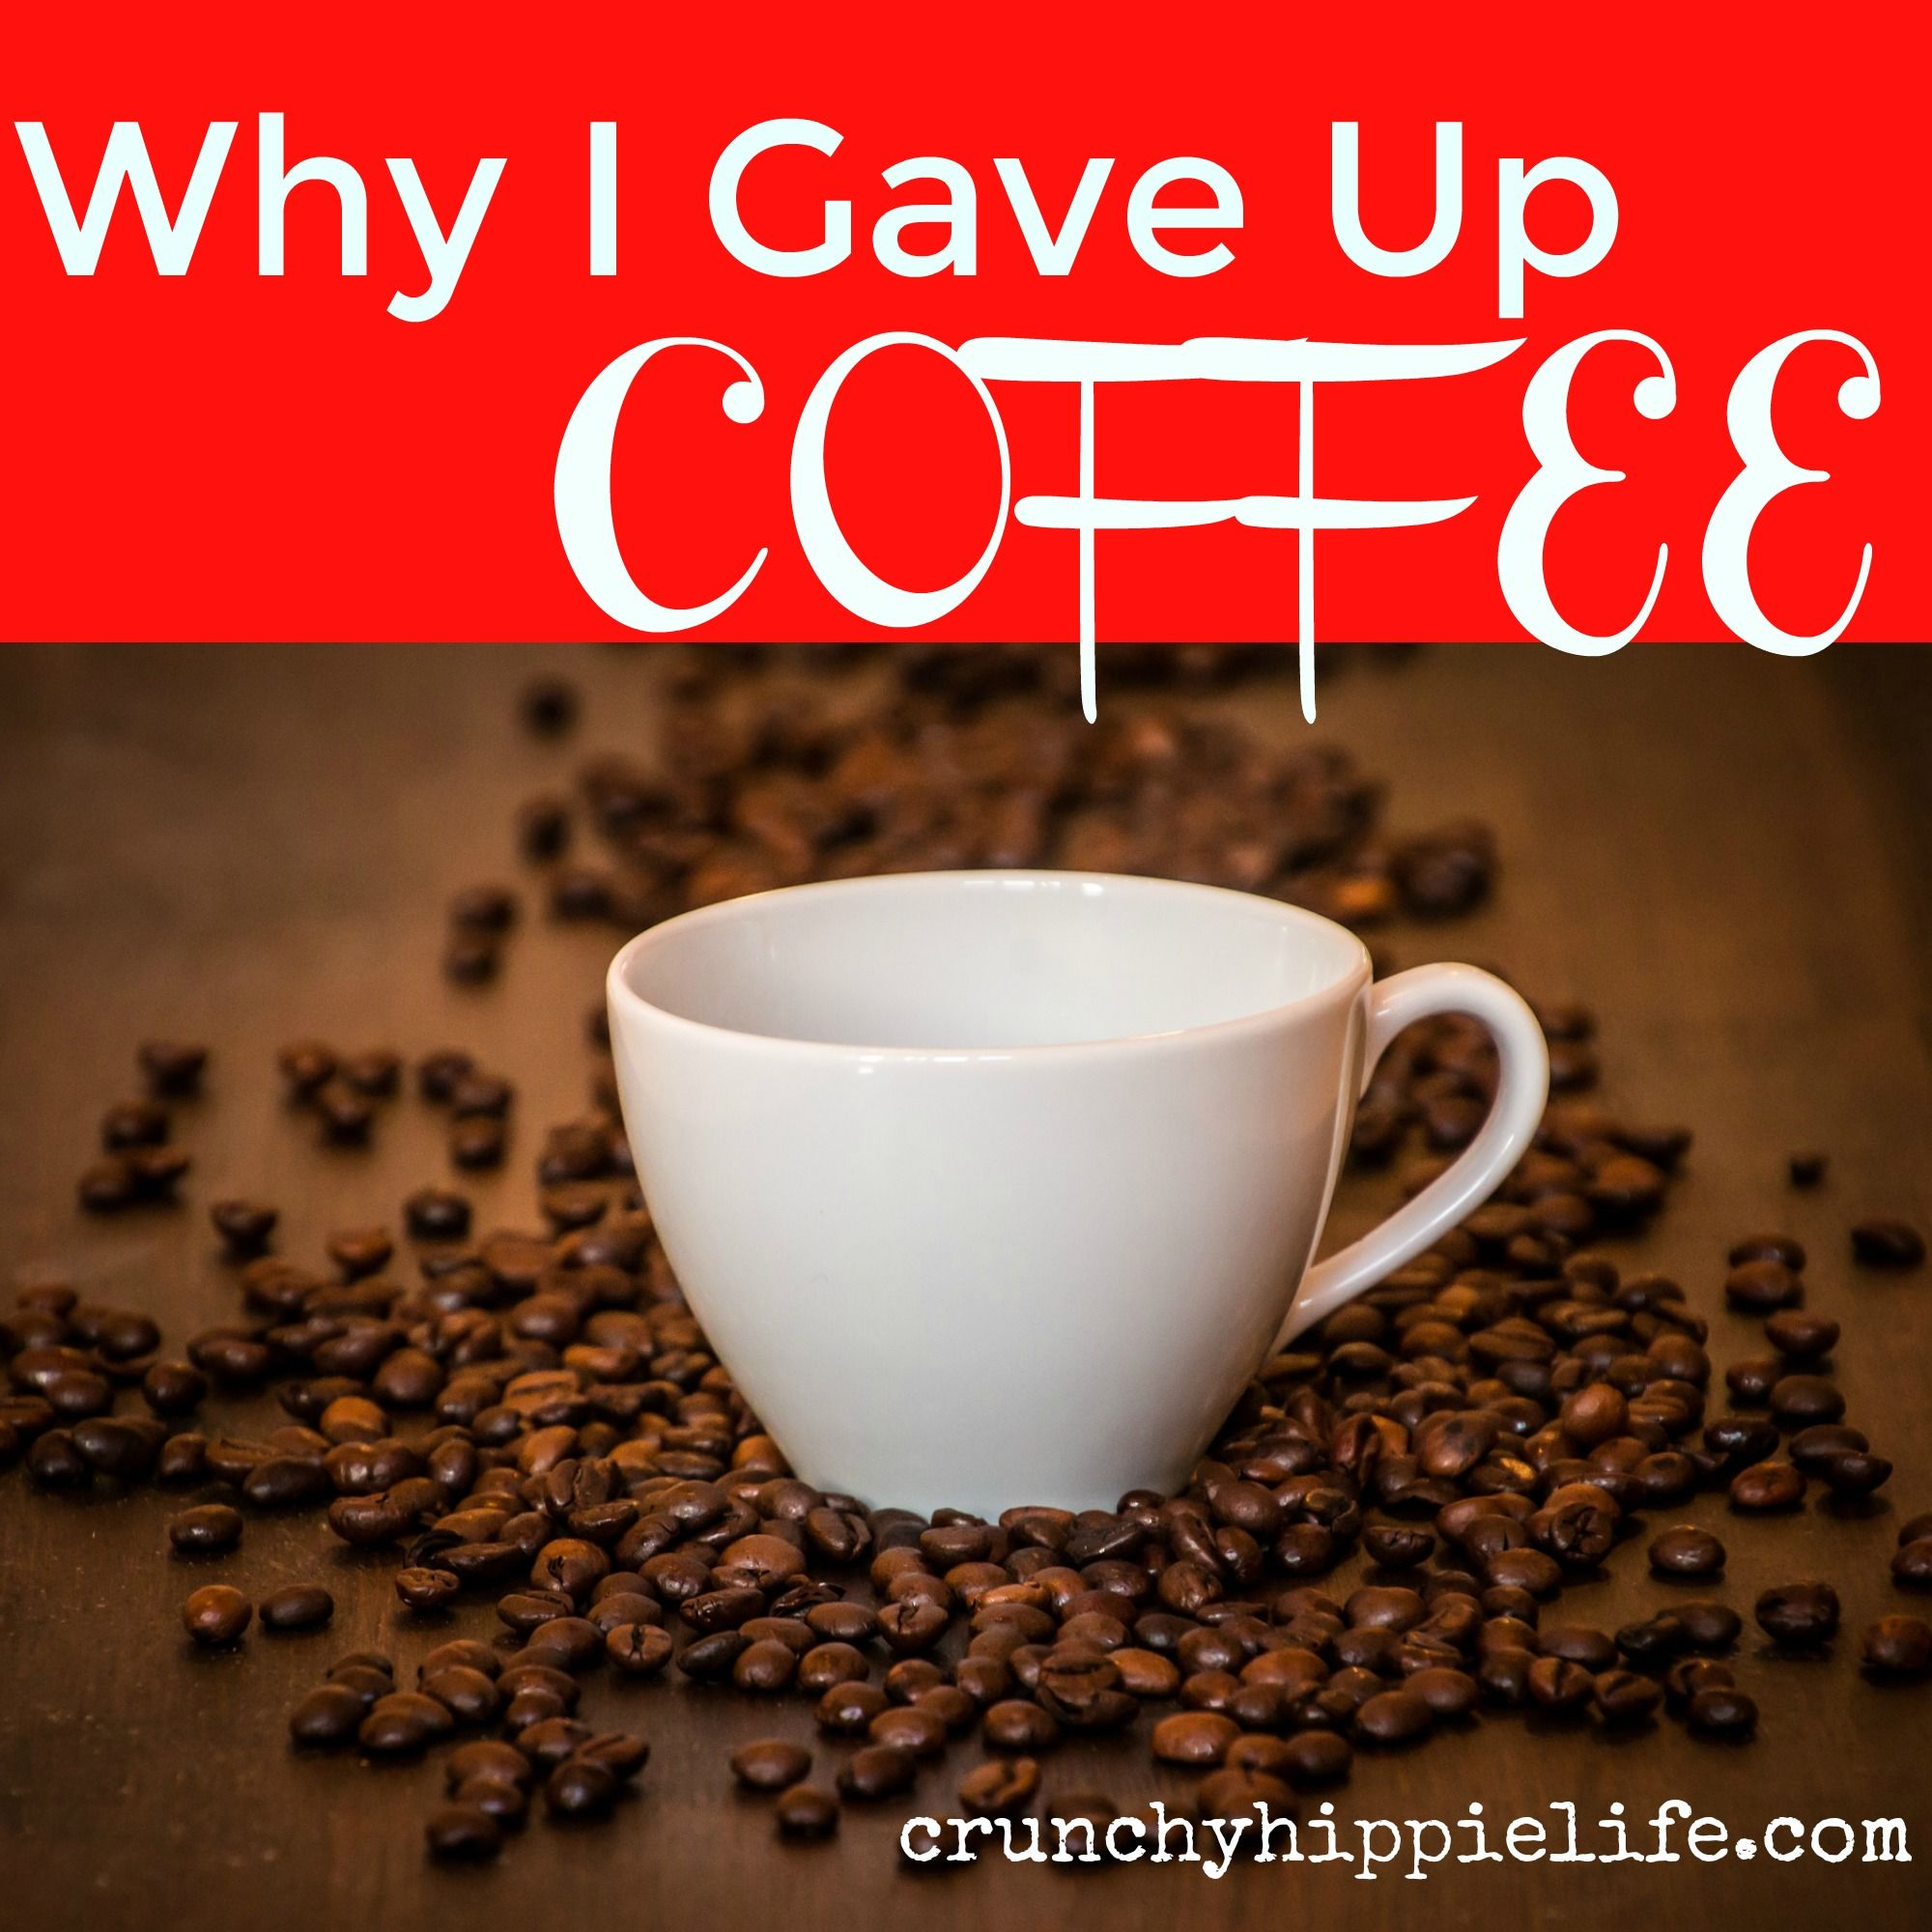 I never considered the potential negative effects of my daily cup of coffee, but once I learned that it could be holding me back, I had to investigate.